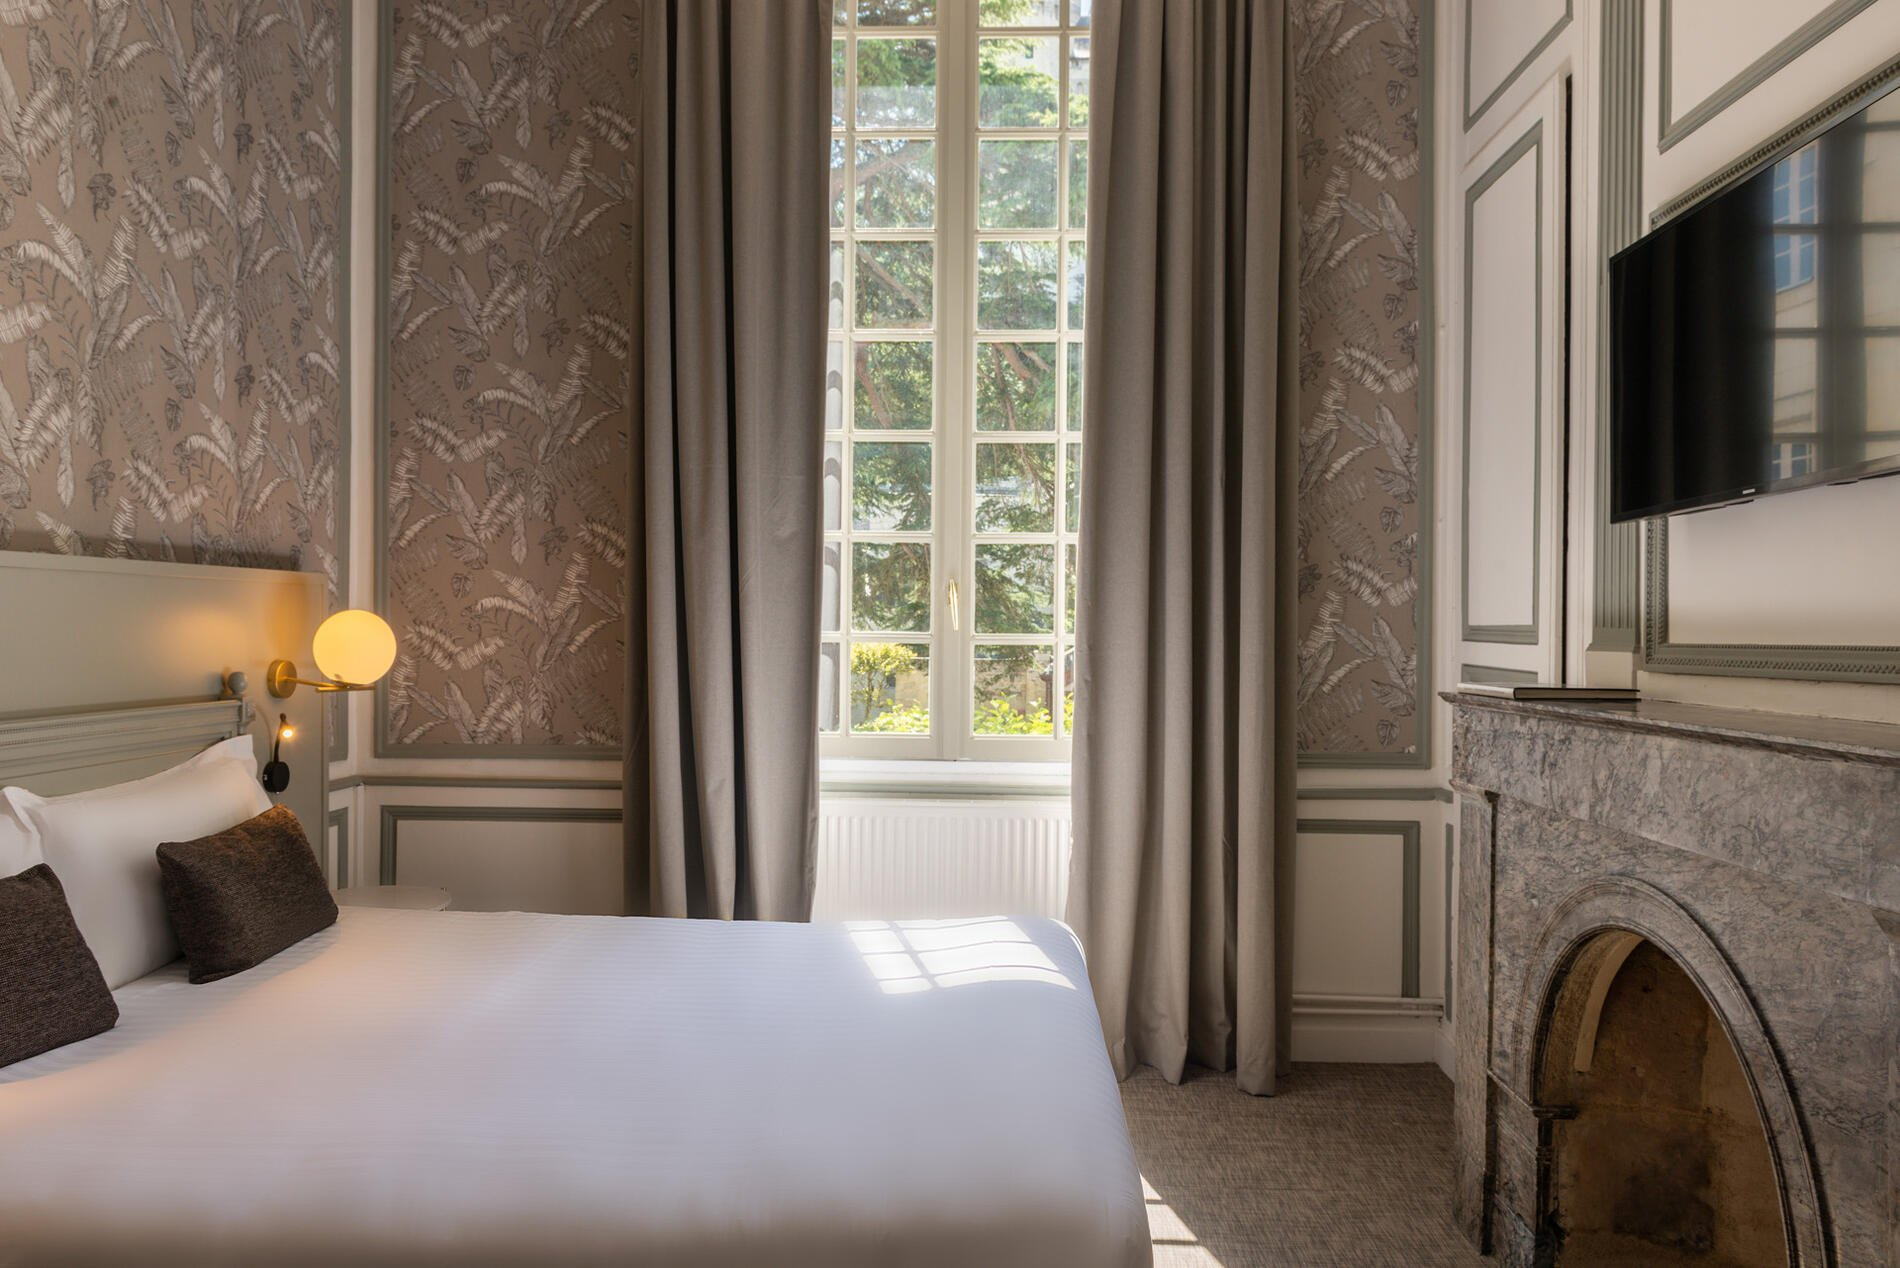 Classic Room at Hotel Anne d'Anjou in Saumur, France